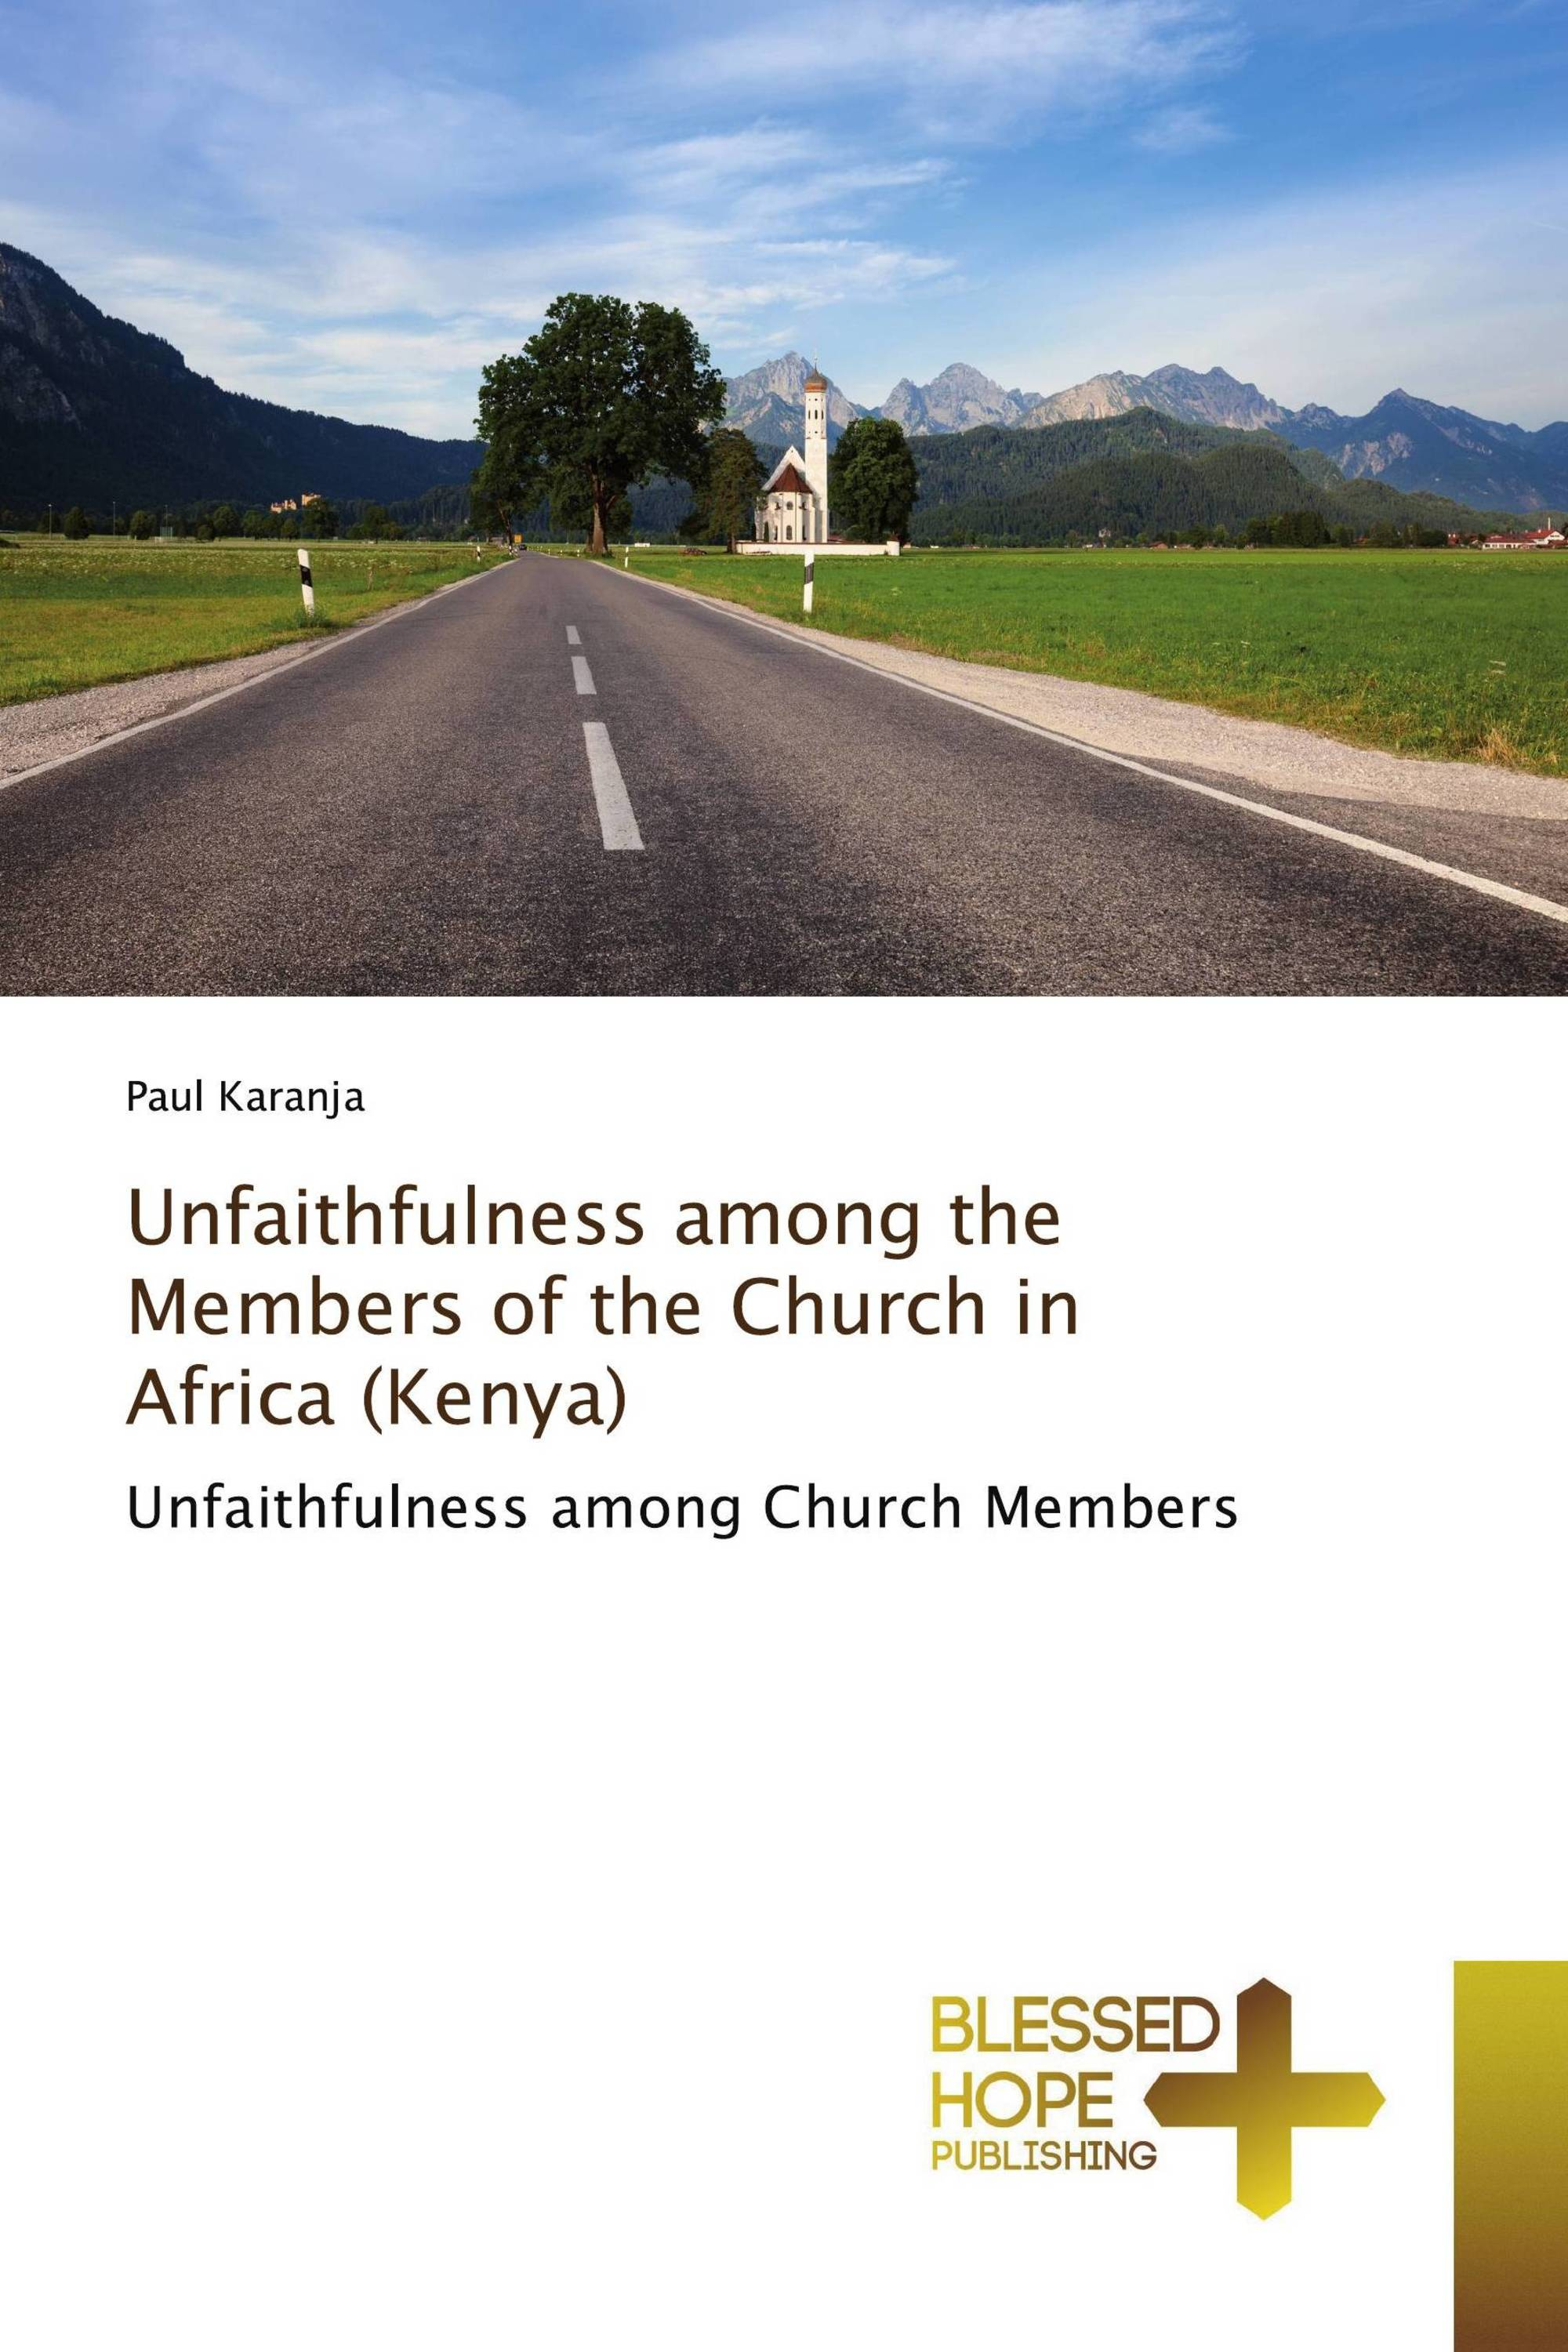 Unfaithfulness among the Members of the Church in Africa (Kenya)